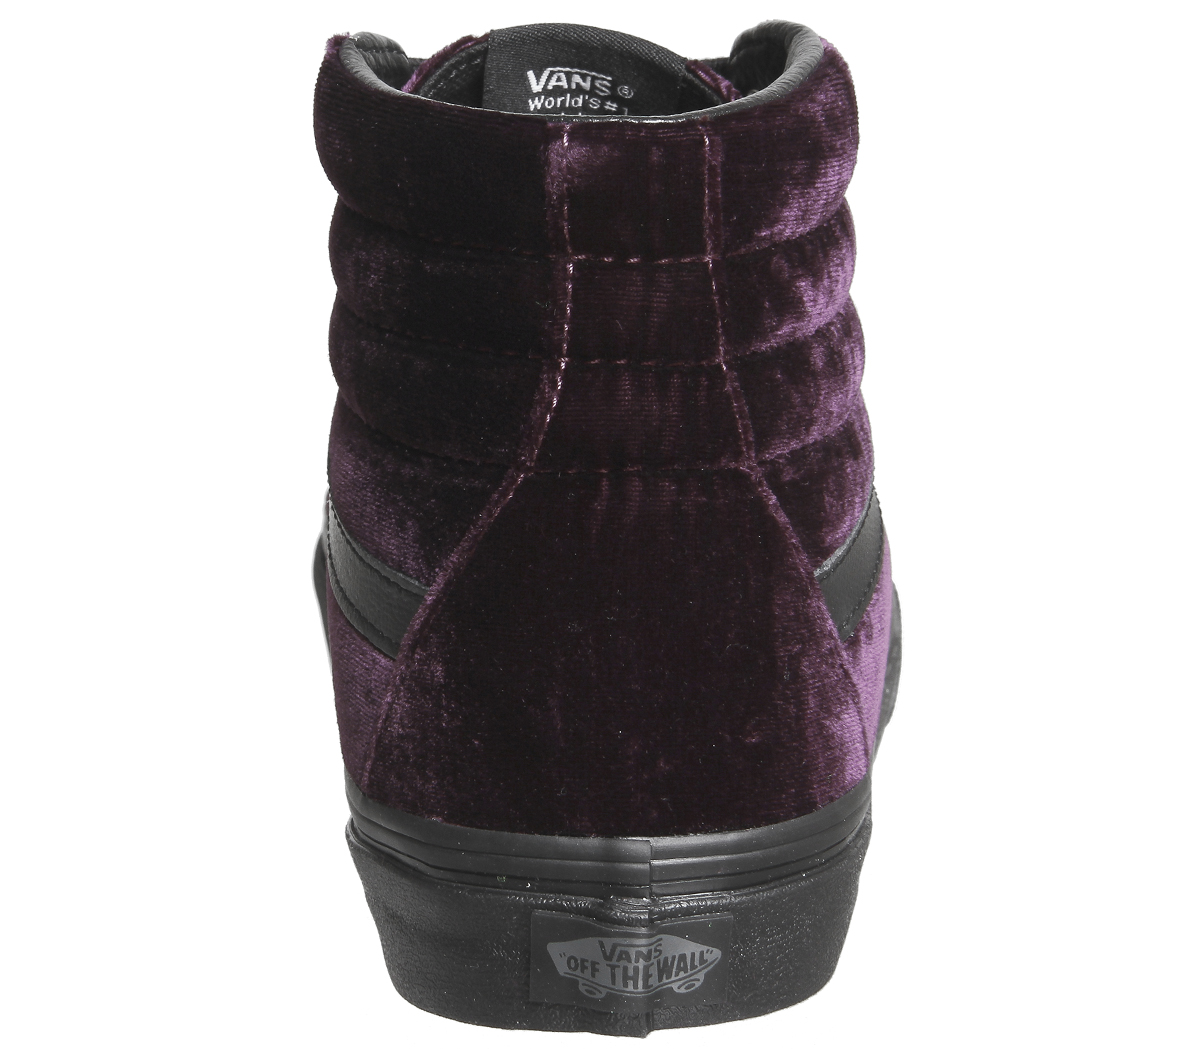 af48072429 Womens VANS Burgundy Textile Lace up Trainers UK Size 5  ex Display ...